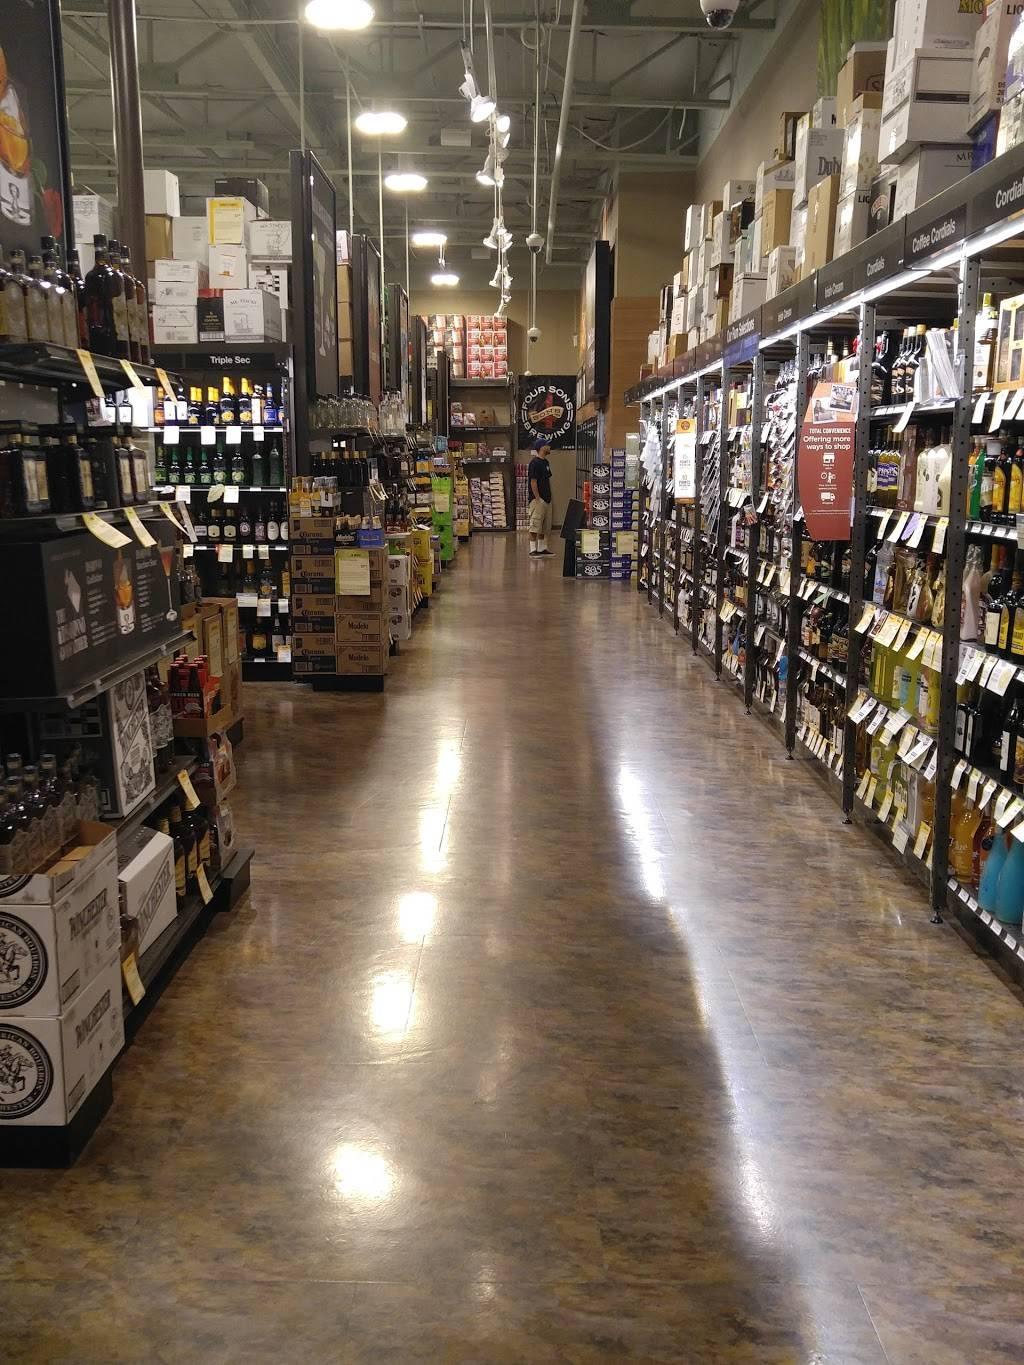 Total Wine & More - store  | Photo 7 of 9 | Address: Towne Center, 7400 Carson Blvd, Long Beach, CA 90808, USA | Phone: (562) 420-2018